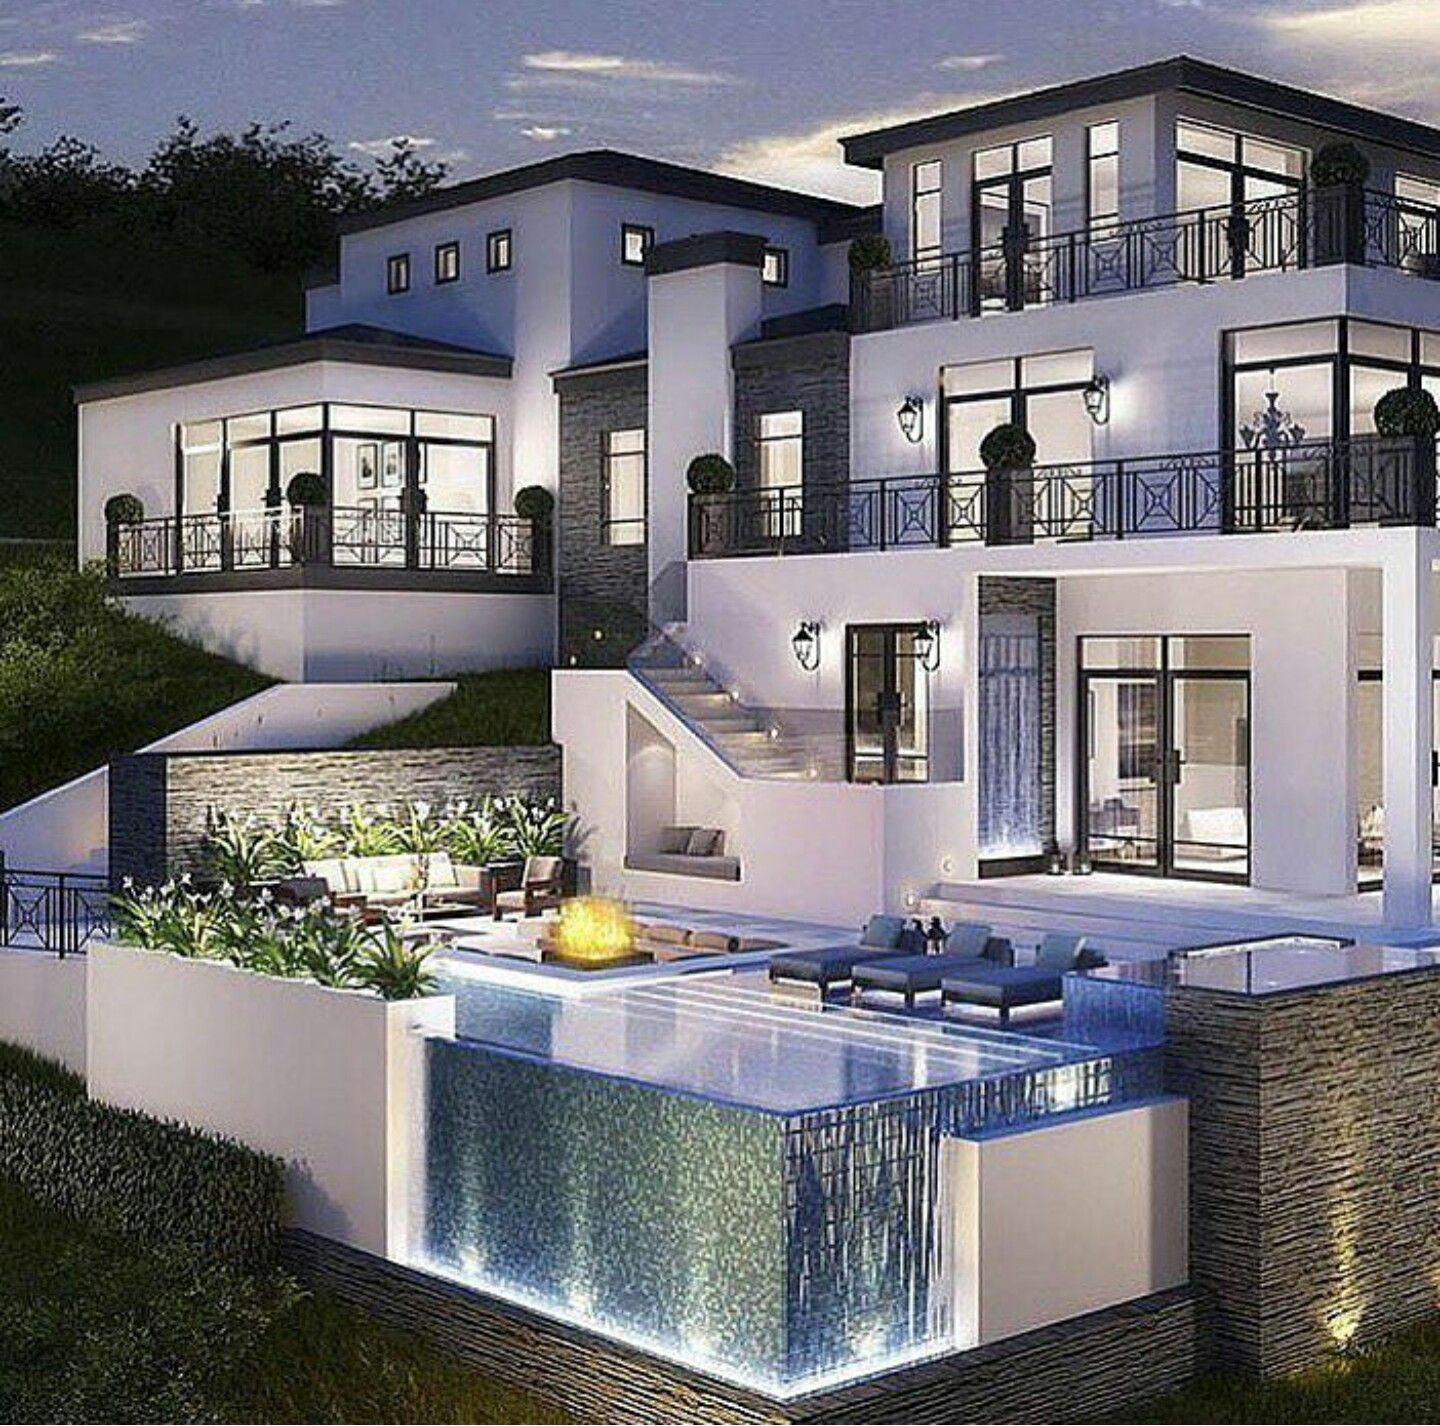 Los Angeles California Homes: Amazing Los Angeles Hollywood Hills Mansion With Infinity